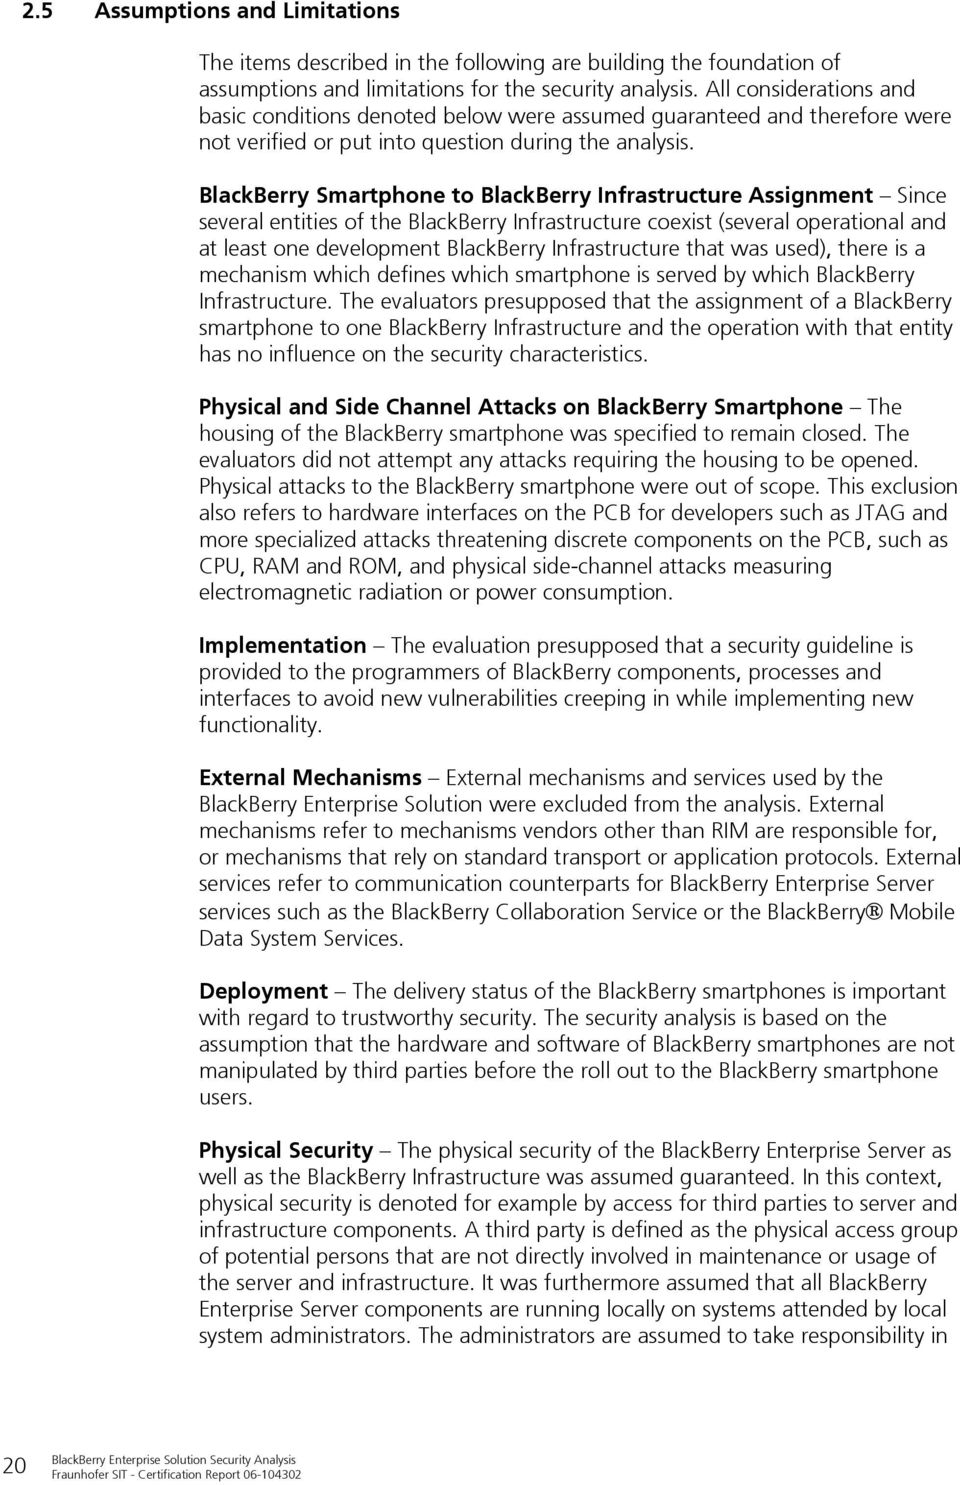 BlackBerry Smartphone to BlackBerry Infrastructure Assignment Since several entities of the BlackBerry Infrastructure coexist (several operational and at least one development BlackBerry